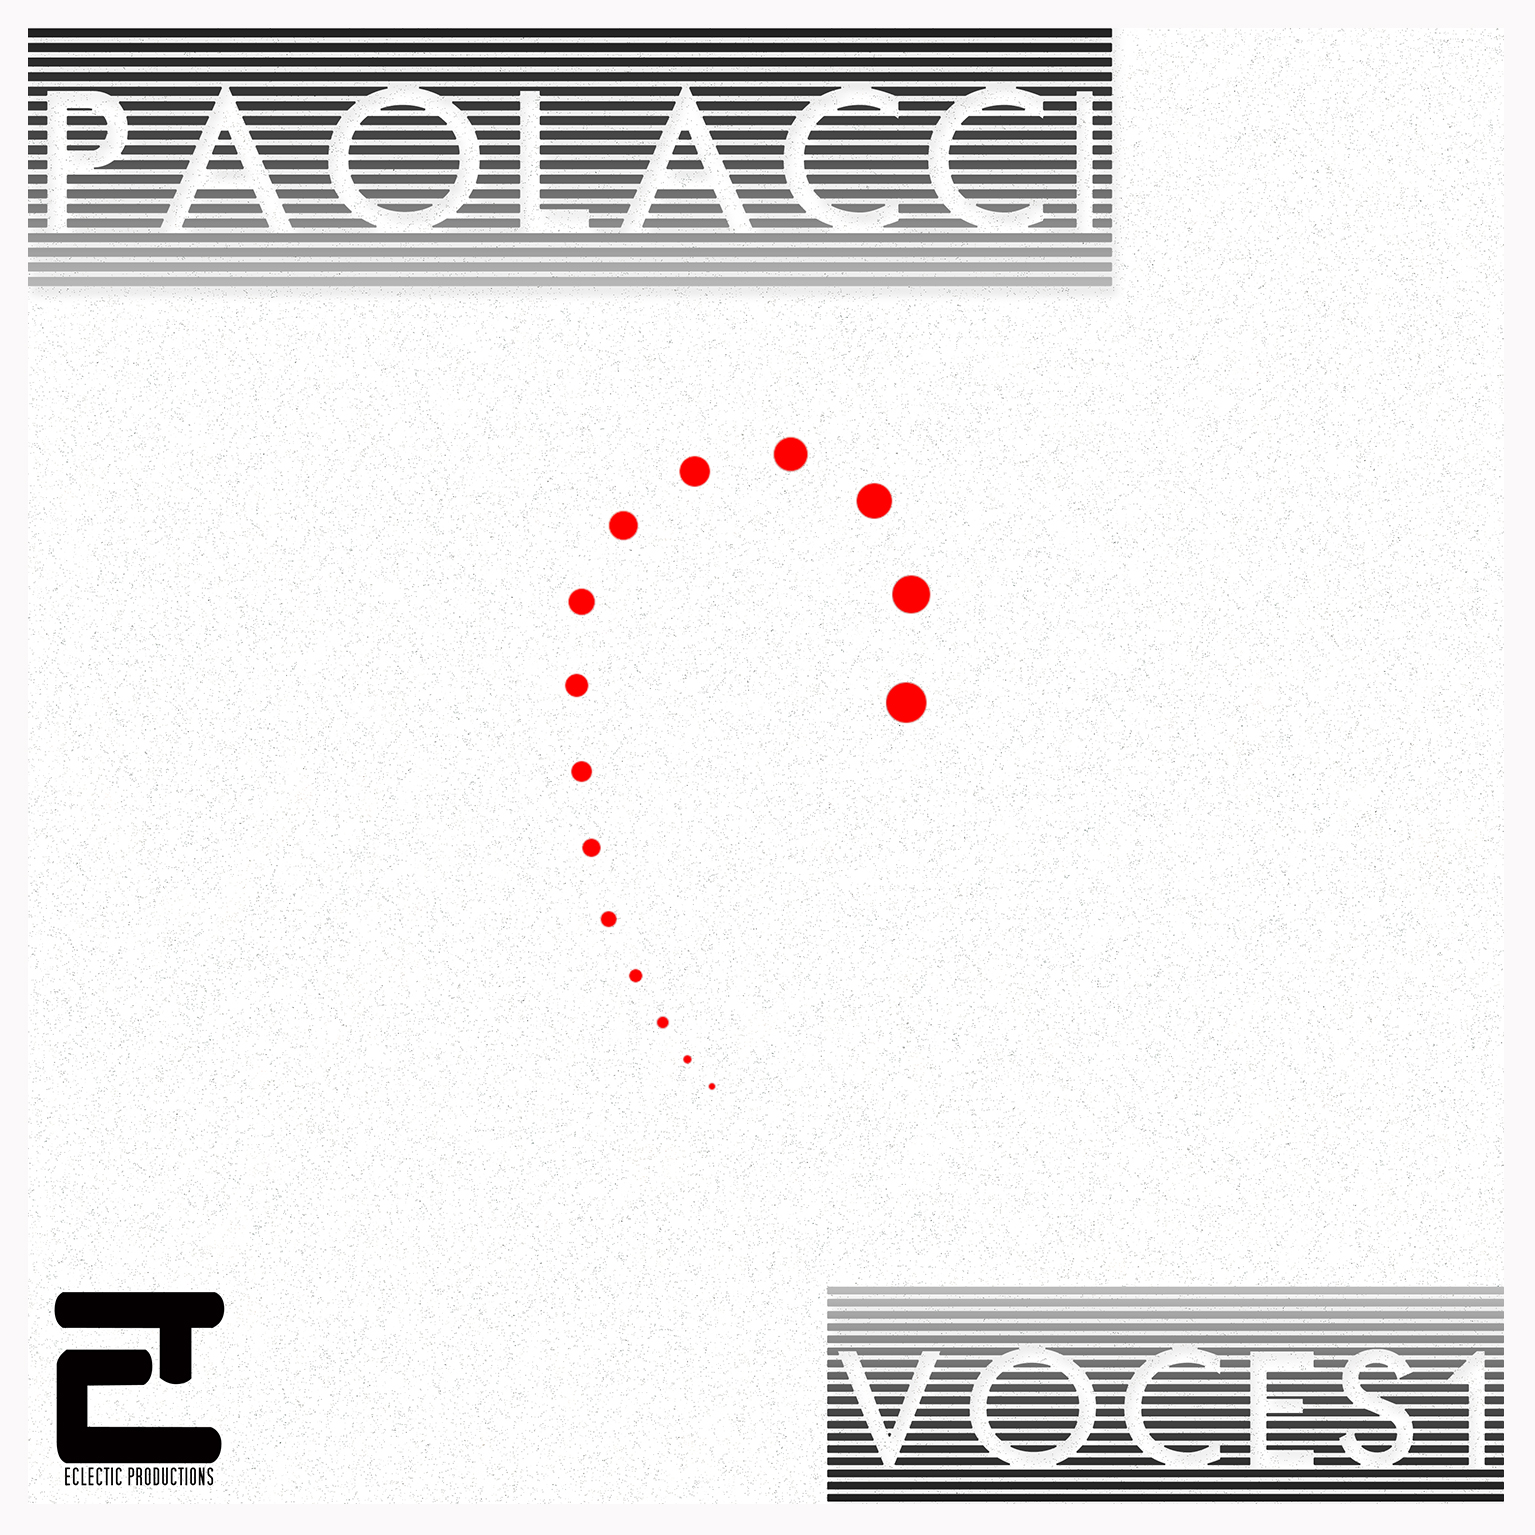 Paolacci is out!!! VOCES 1